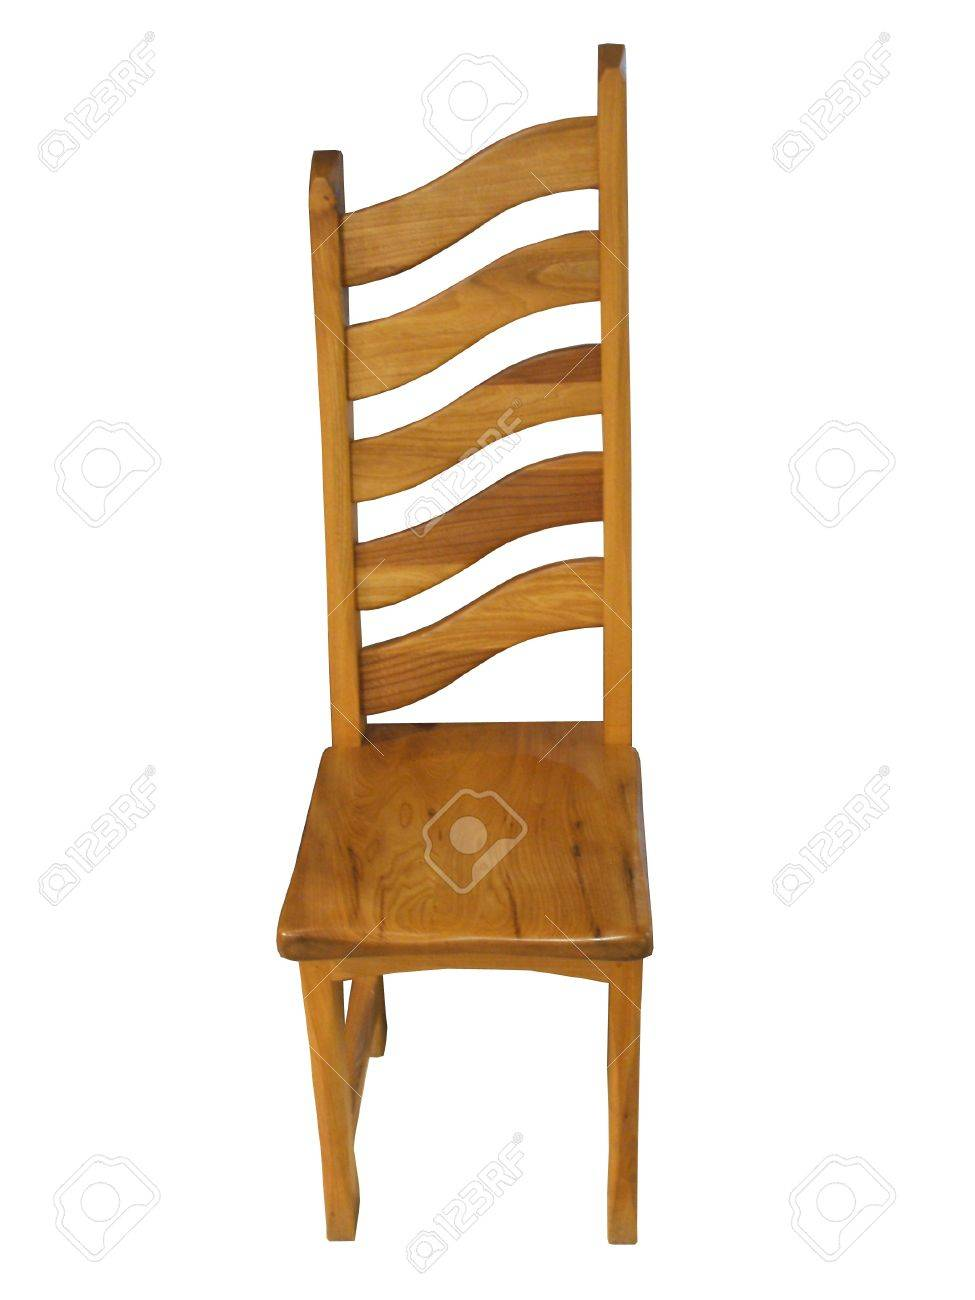 unusual wooden chair panasonic ma70 massage a curved back shaped stock photo picture and 8957946